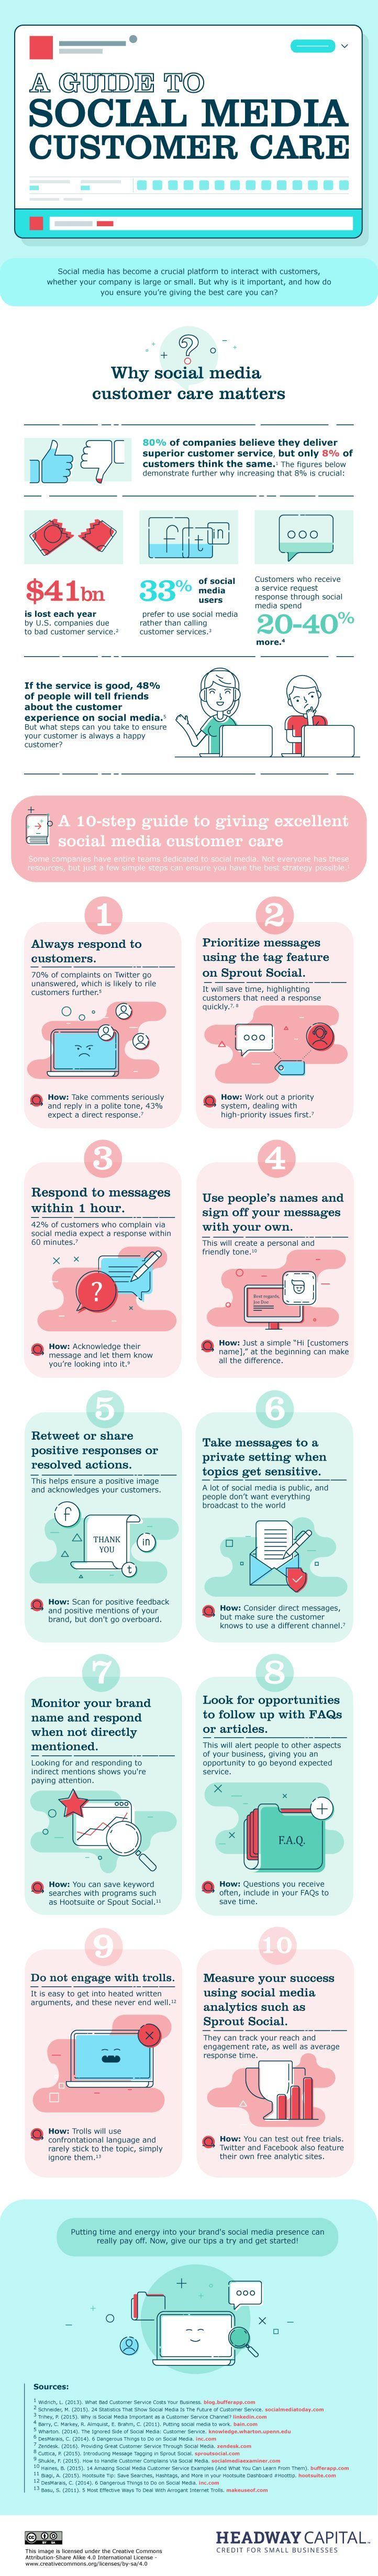 Infographic: How to provide excellent customer service on social media -- Boost engagement and loyalty, while sidestepping PR problems and online firestorms. This infographic can help you power your digital efforts with consumers.